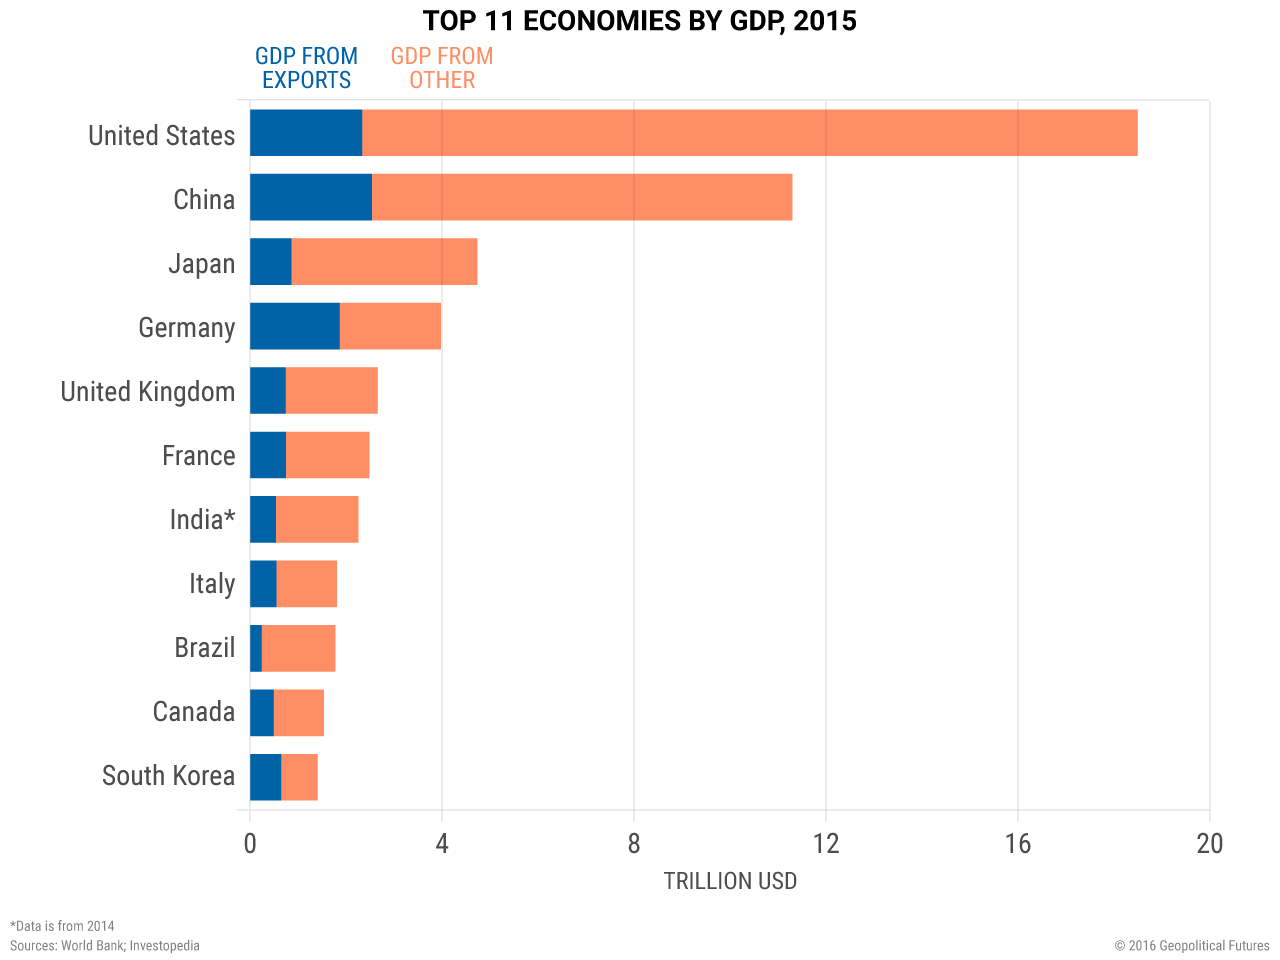 Top 11 Economies by GDP, 2015